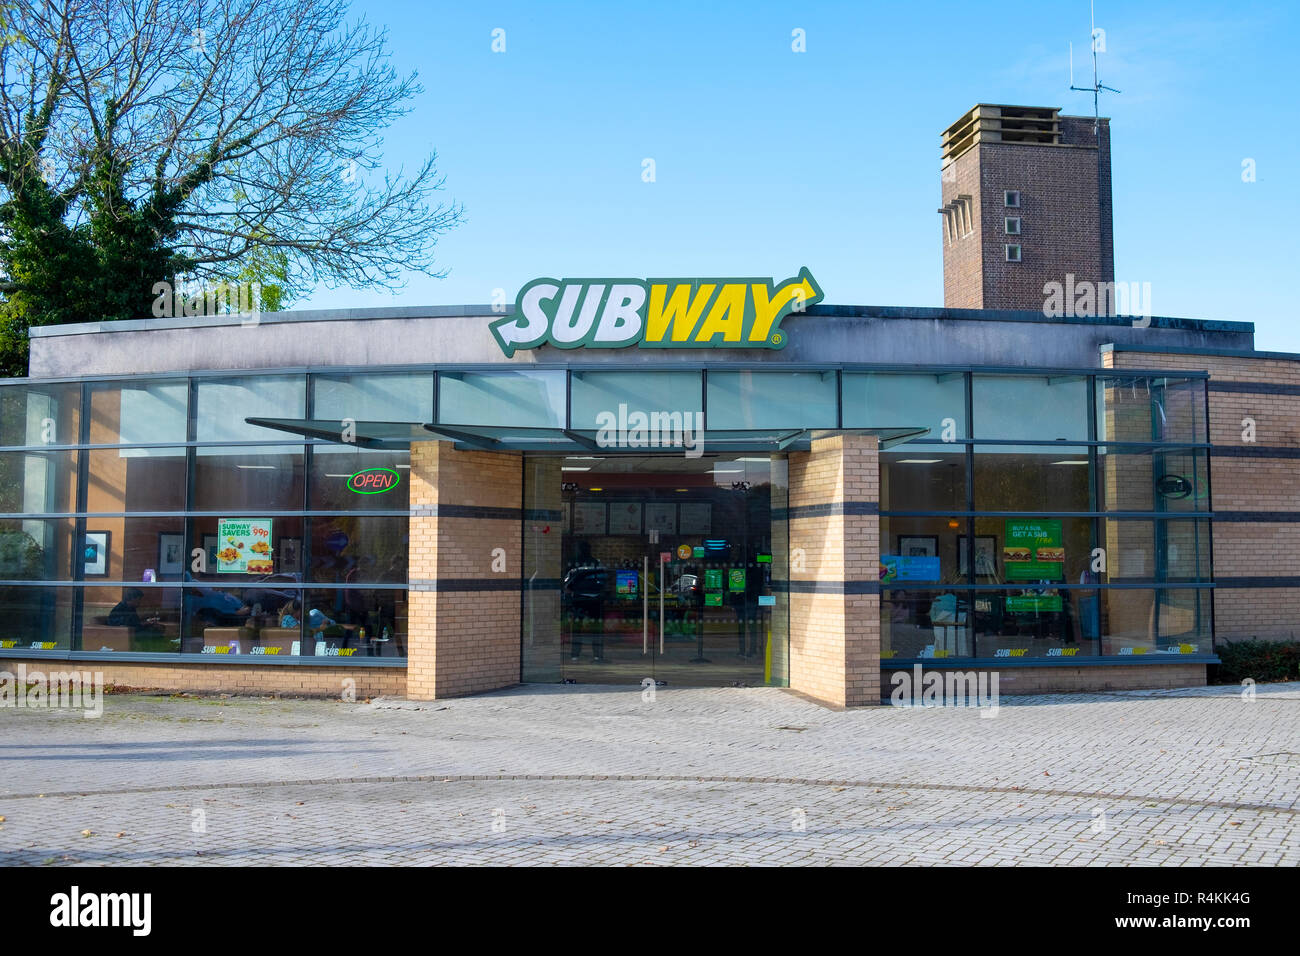 Subway Fast Food Restaurant Exterior East Grinstead Sussex Stock Photo Alamy